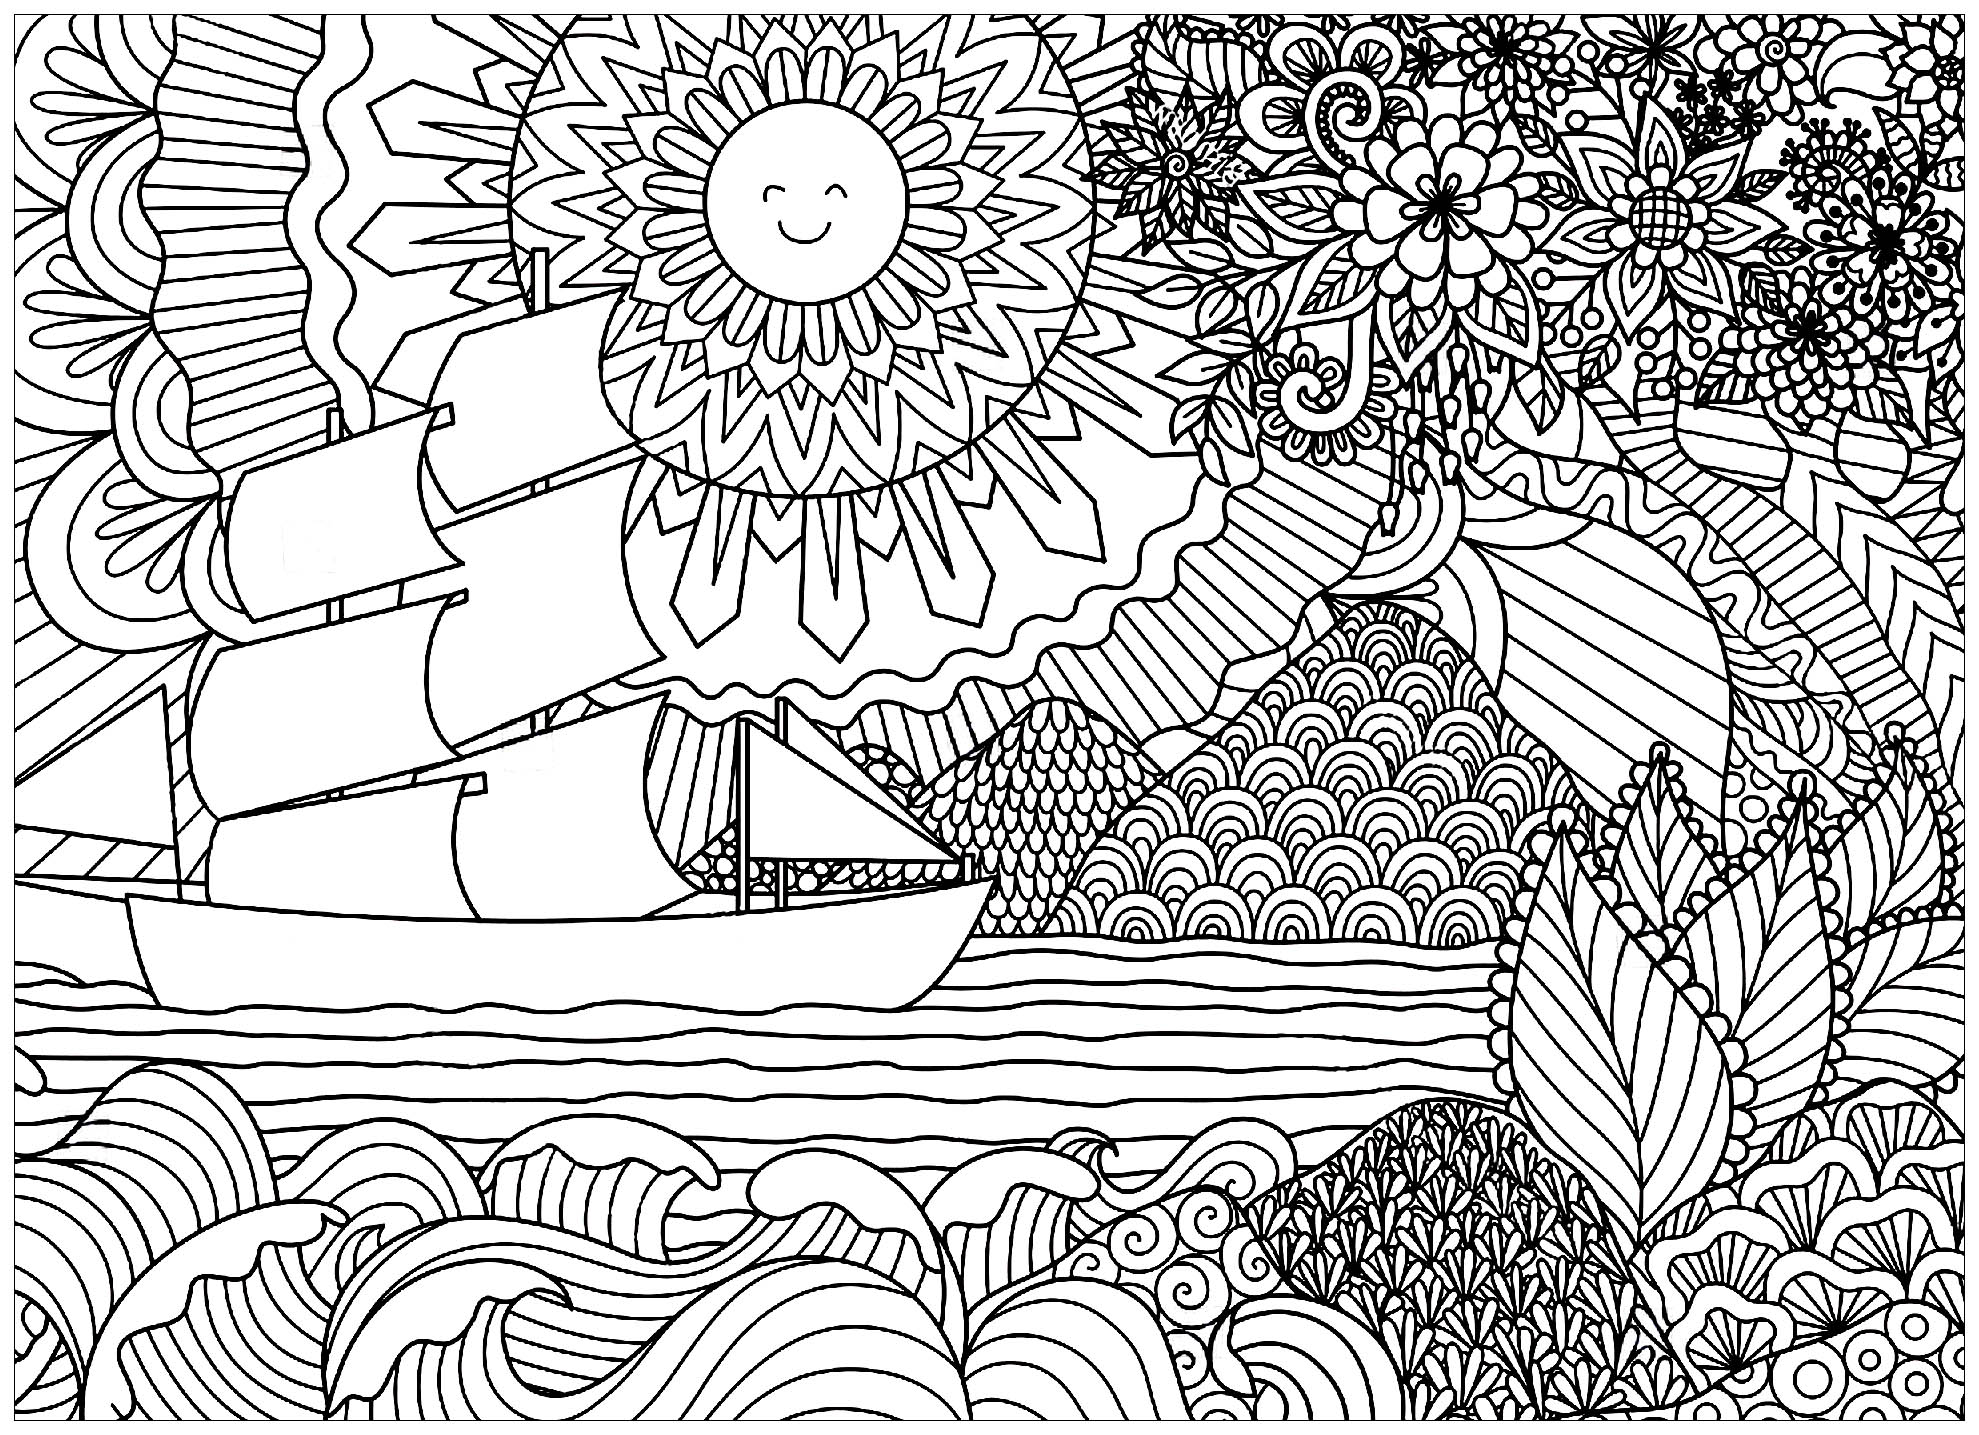 Seascape With Sun And Boat Landscapes Coloring Pages For